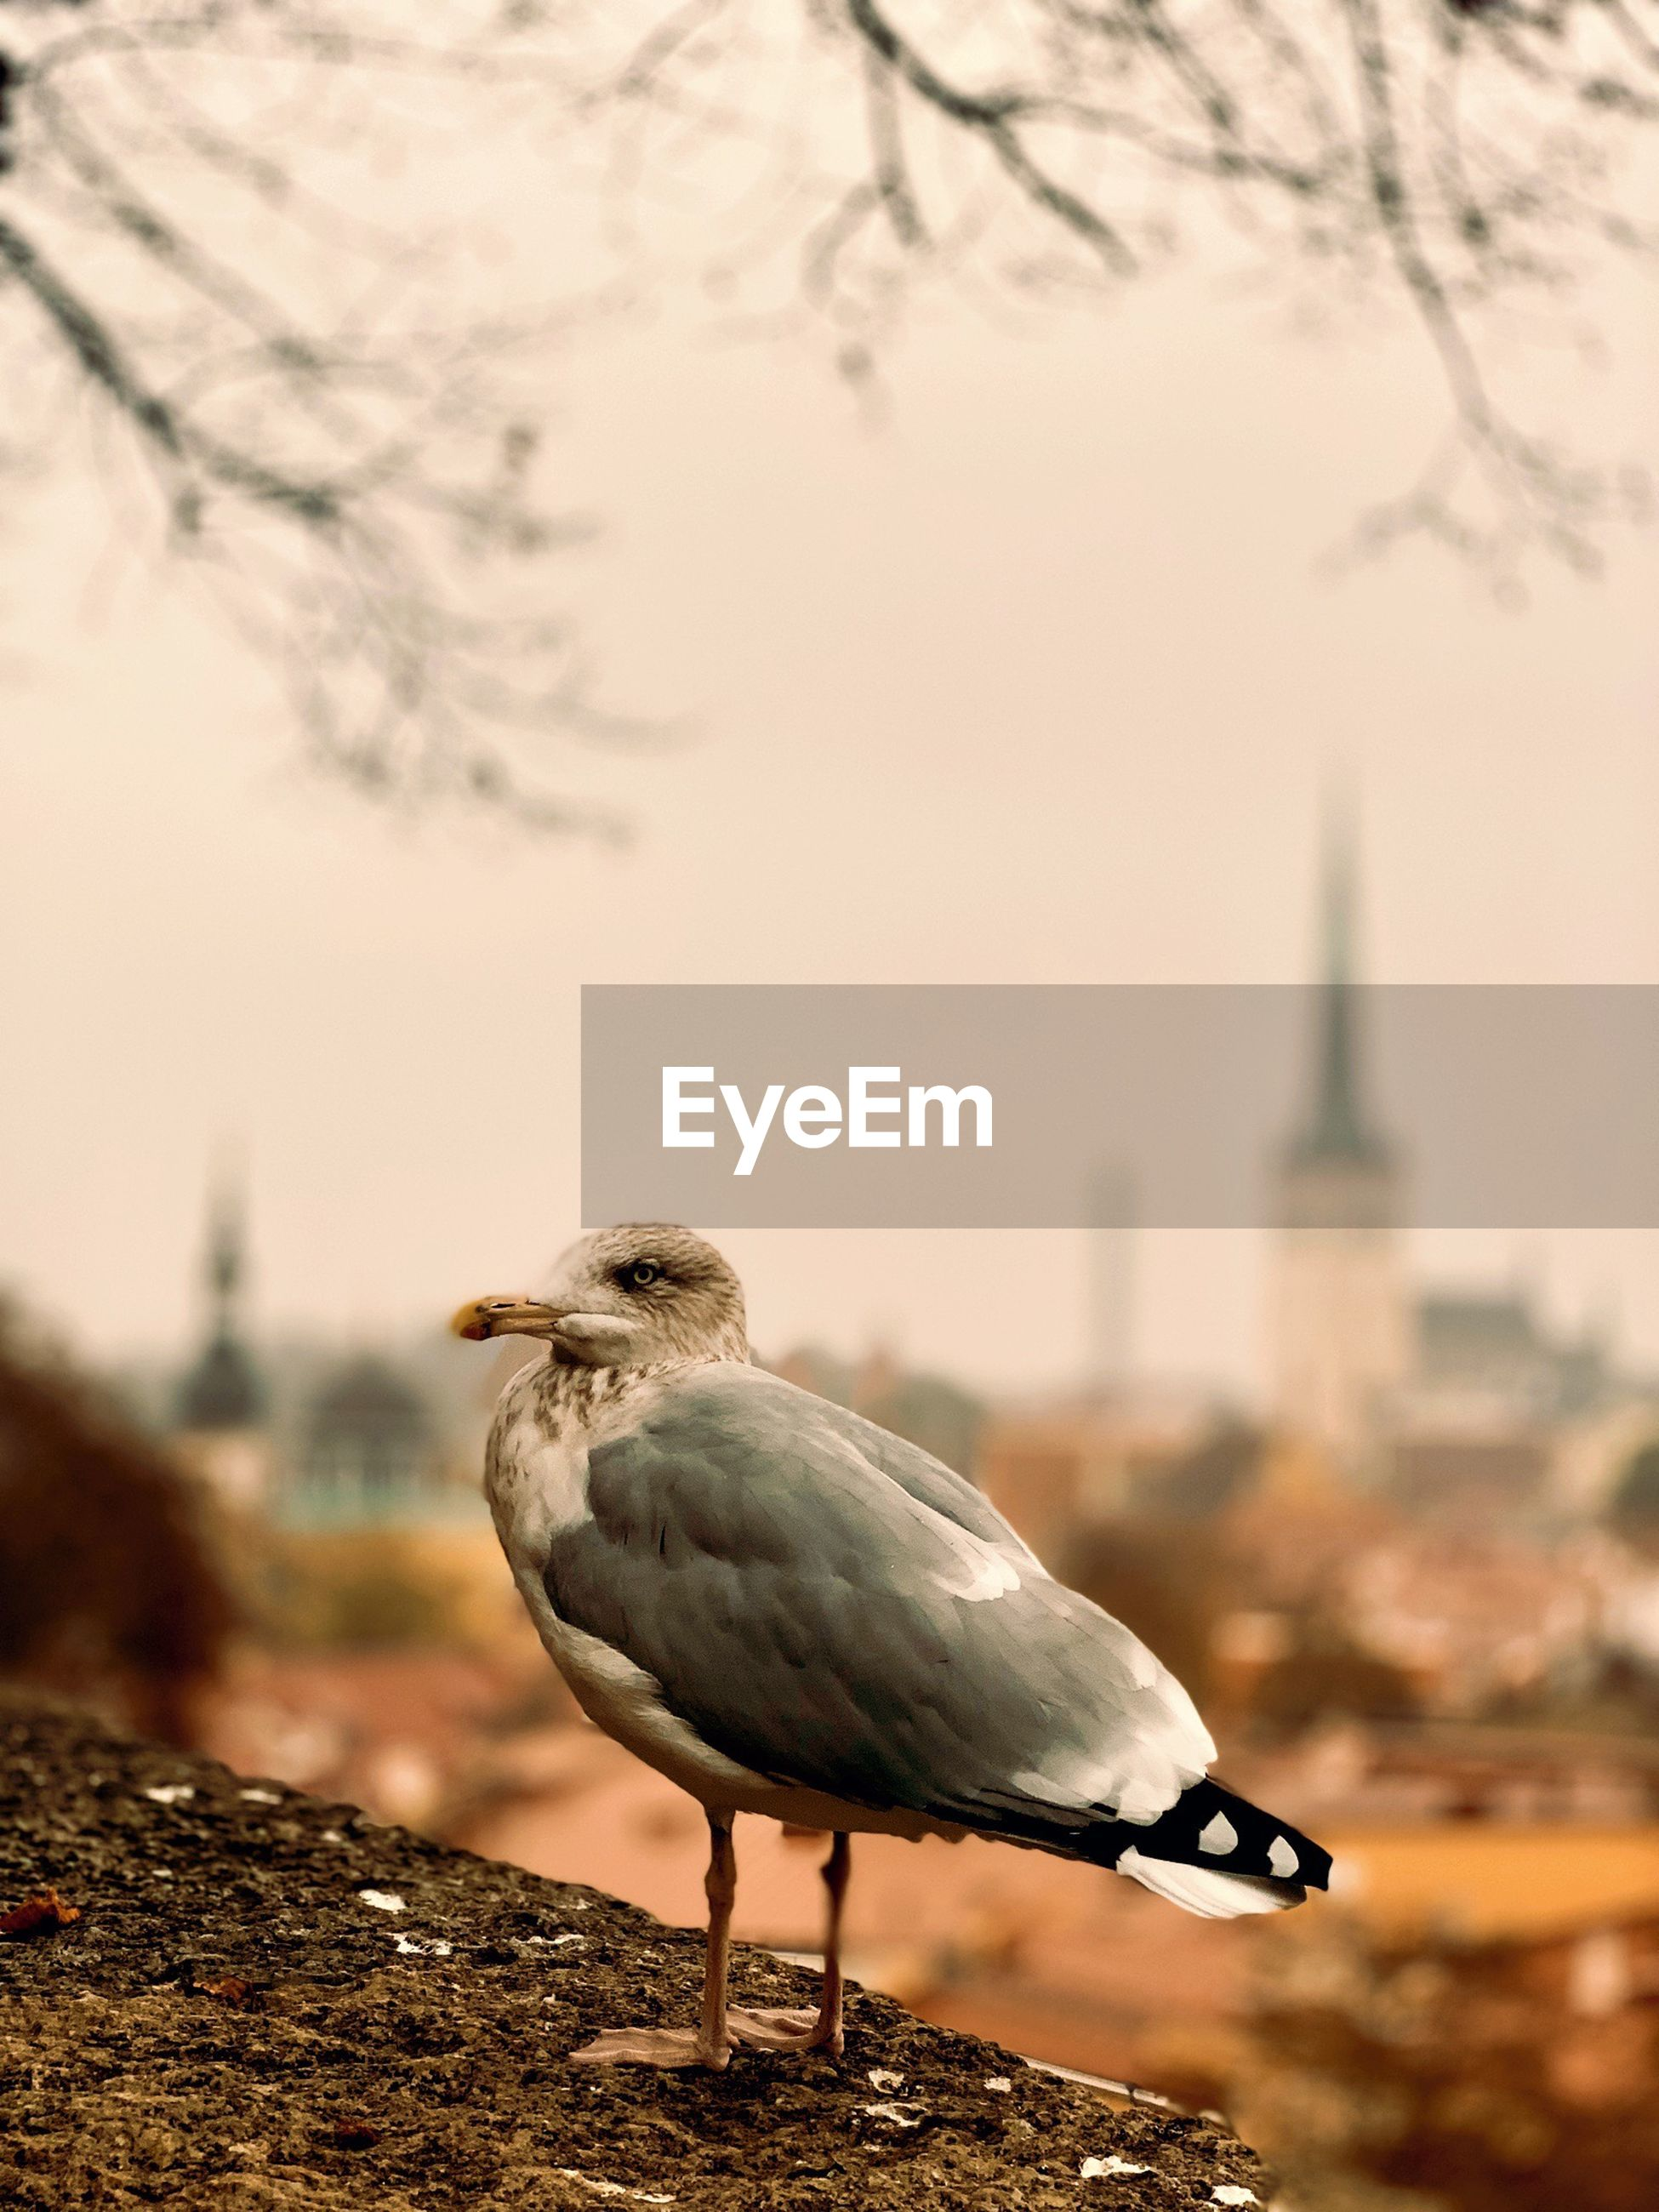 SEAGULL PERCHING ON A CITY